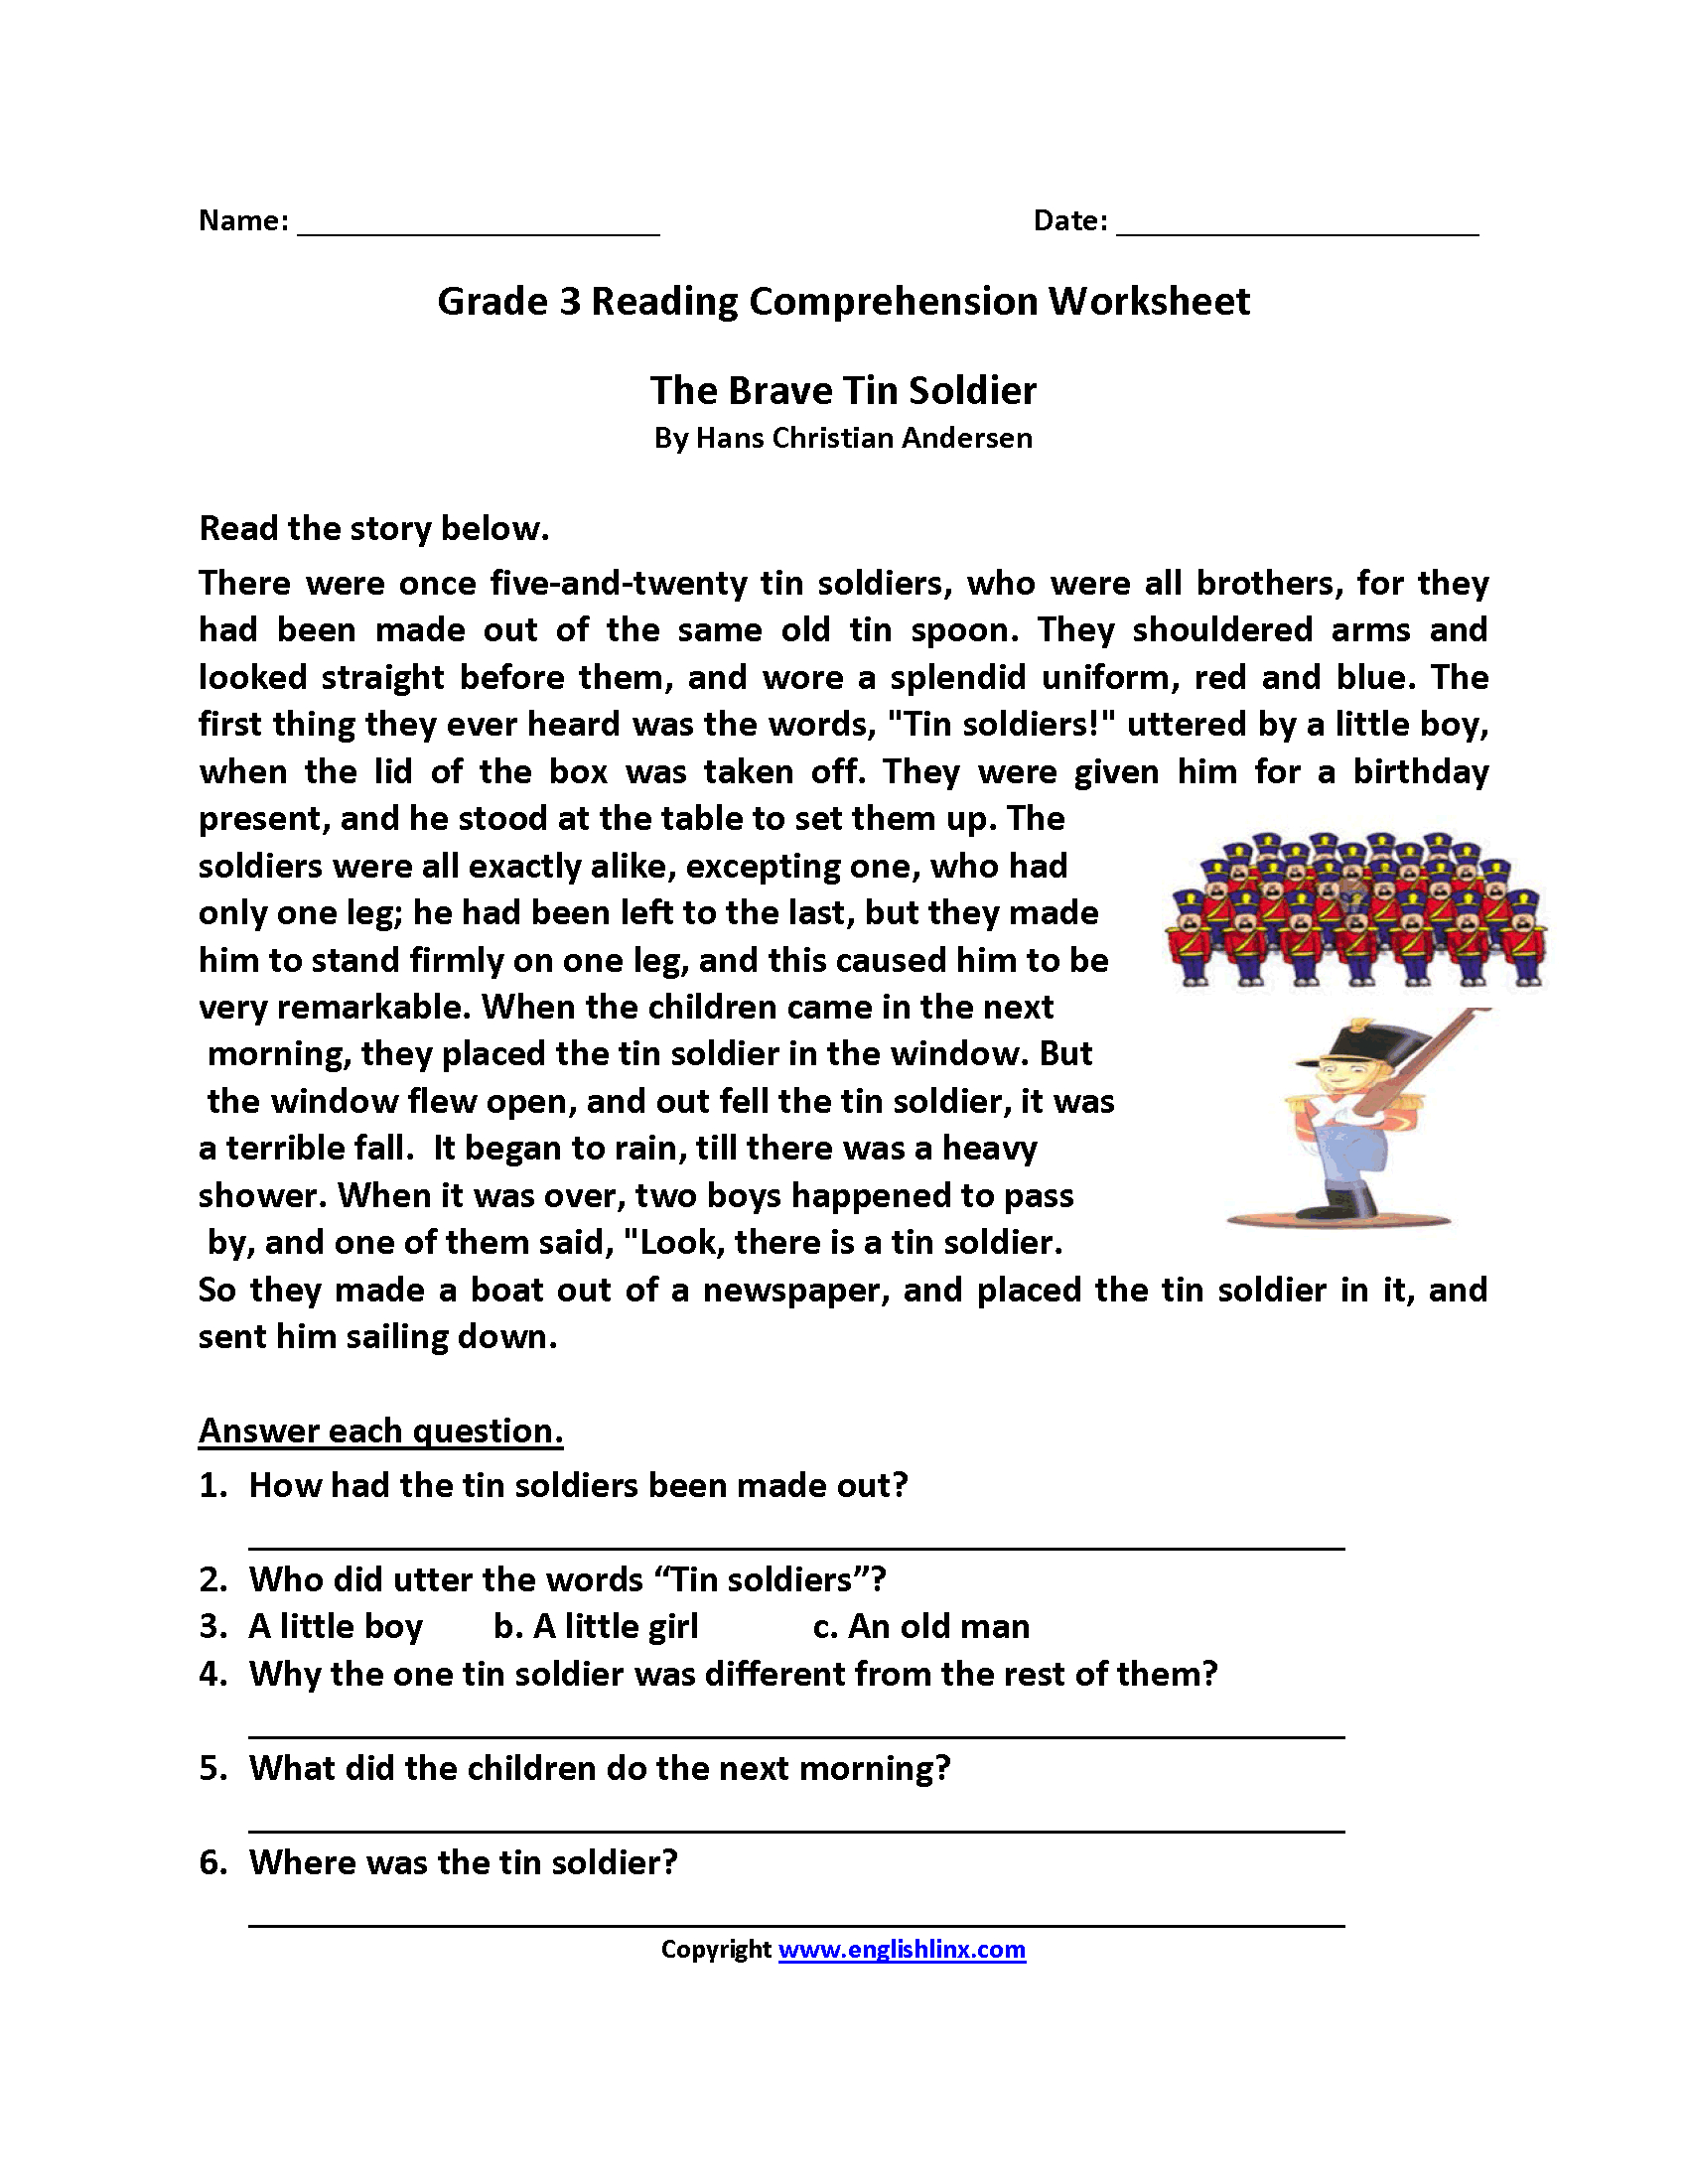 Free Printable Reading Comprehension Worksheets 3Rd Grade For Free - Free Printable Reading Comprehension Worksheets For 3Rd Grade